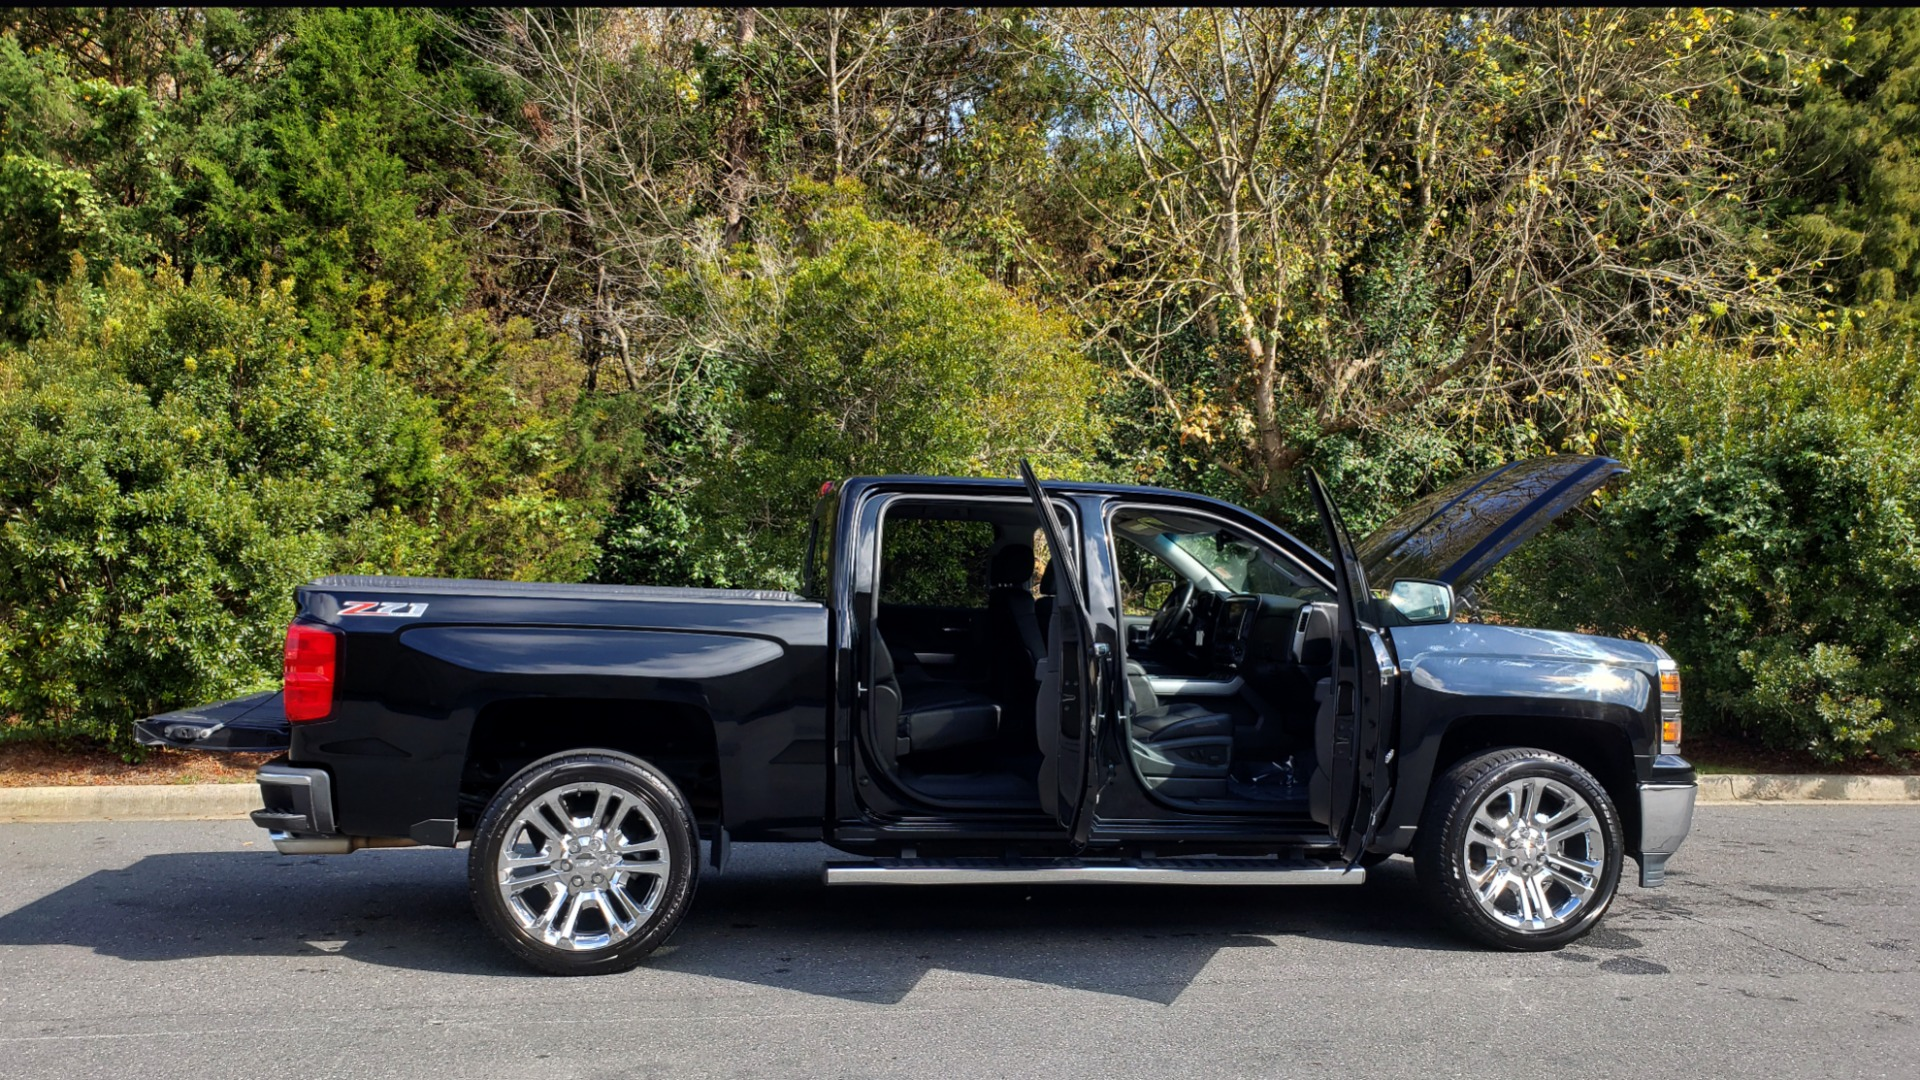 Used 2014 Chevrolet SILVERADO 1500 CREWCAB / LTZ PLUS PKG / 4WD / 2LZ / NAV / BOSE / REARVIEW for sale Sold at Formula Imports in Charlotte NC 28227 10